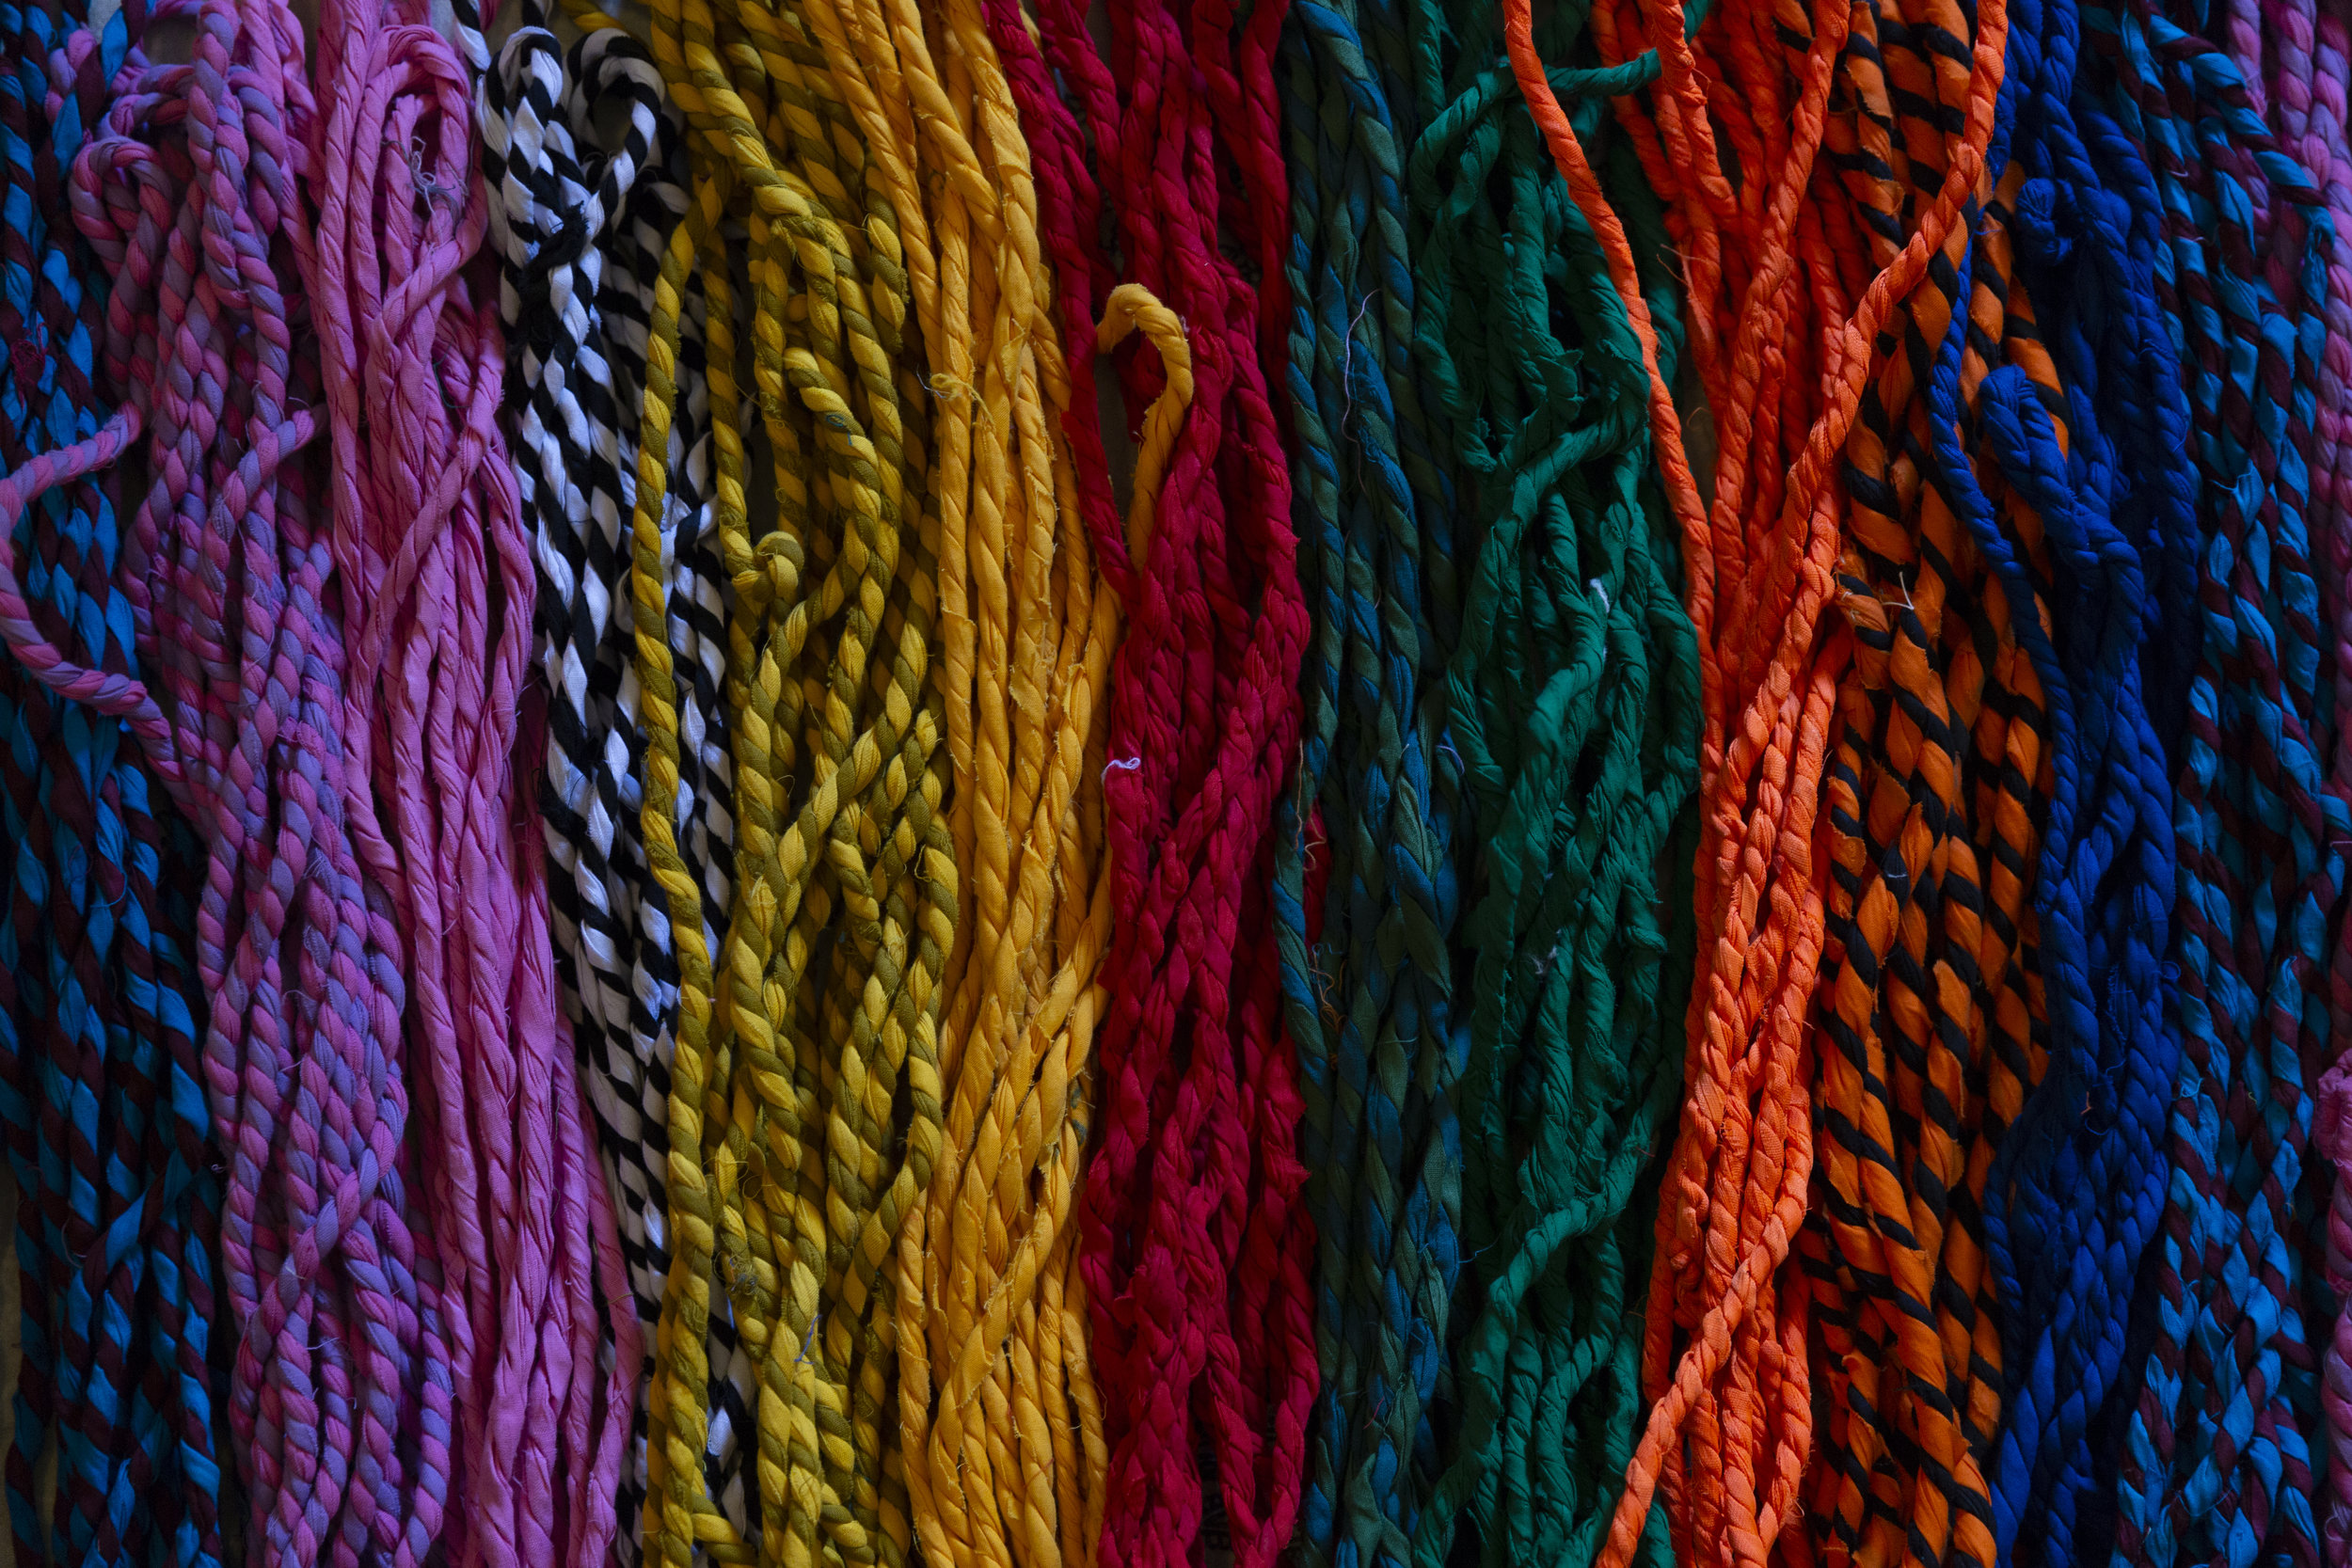 - Yarn woven out of textile waste by Sahil & Sarthak